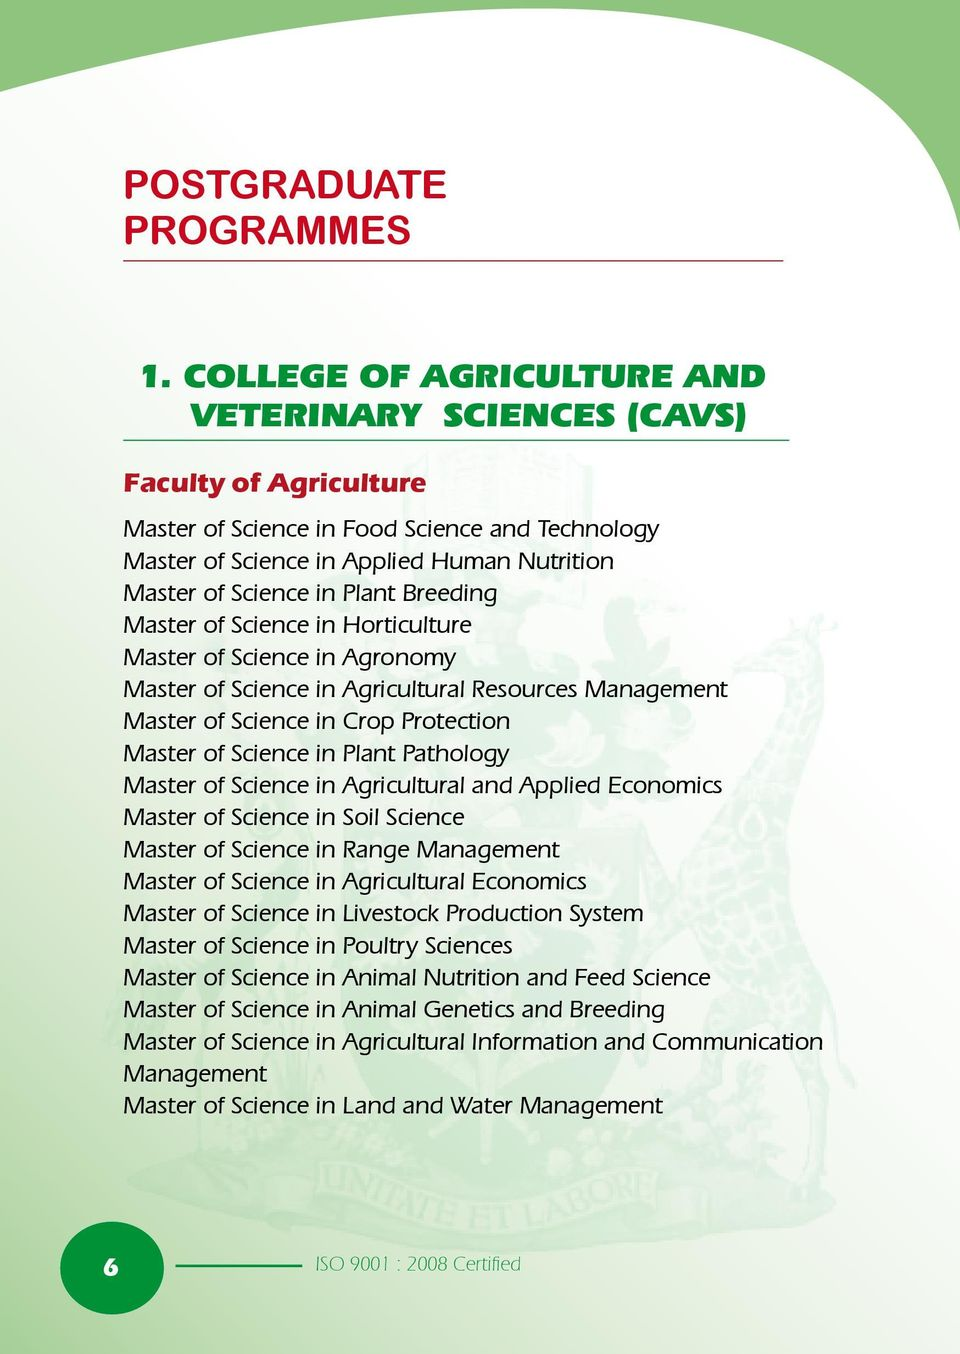 Breeding Master of Science in Horticulture Master of Science in Agronomy Master of Science in Agricultural Resources Management Master of Science in Crop Protection Master of Science in Plant